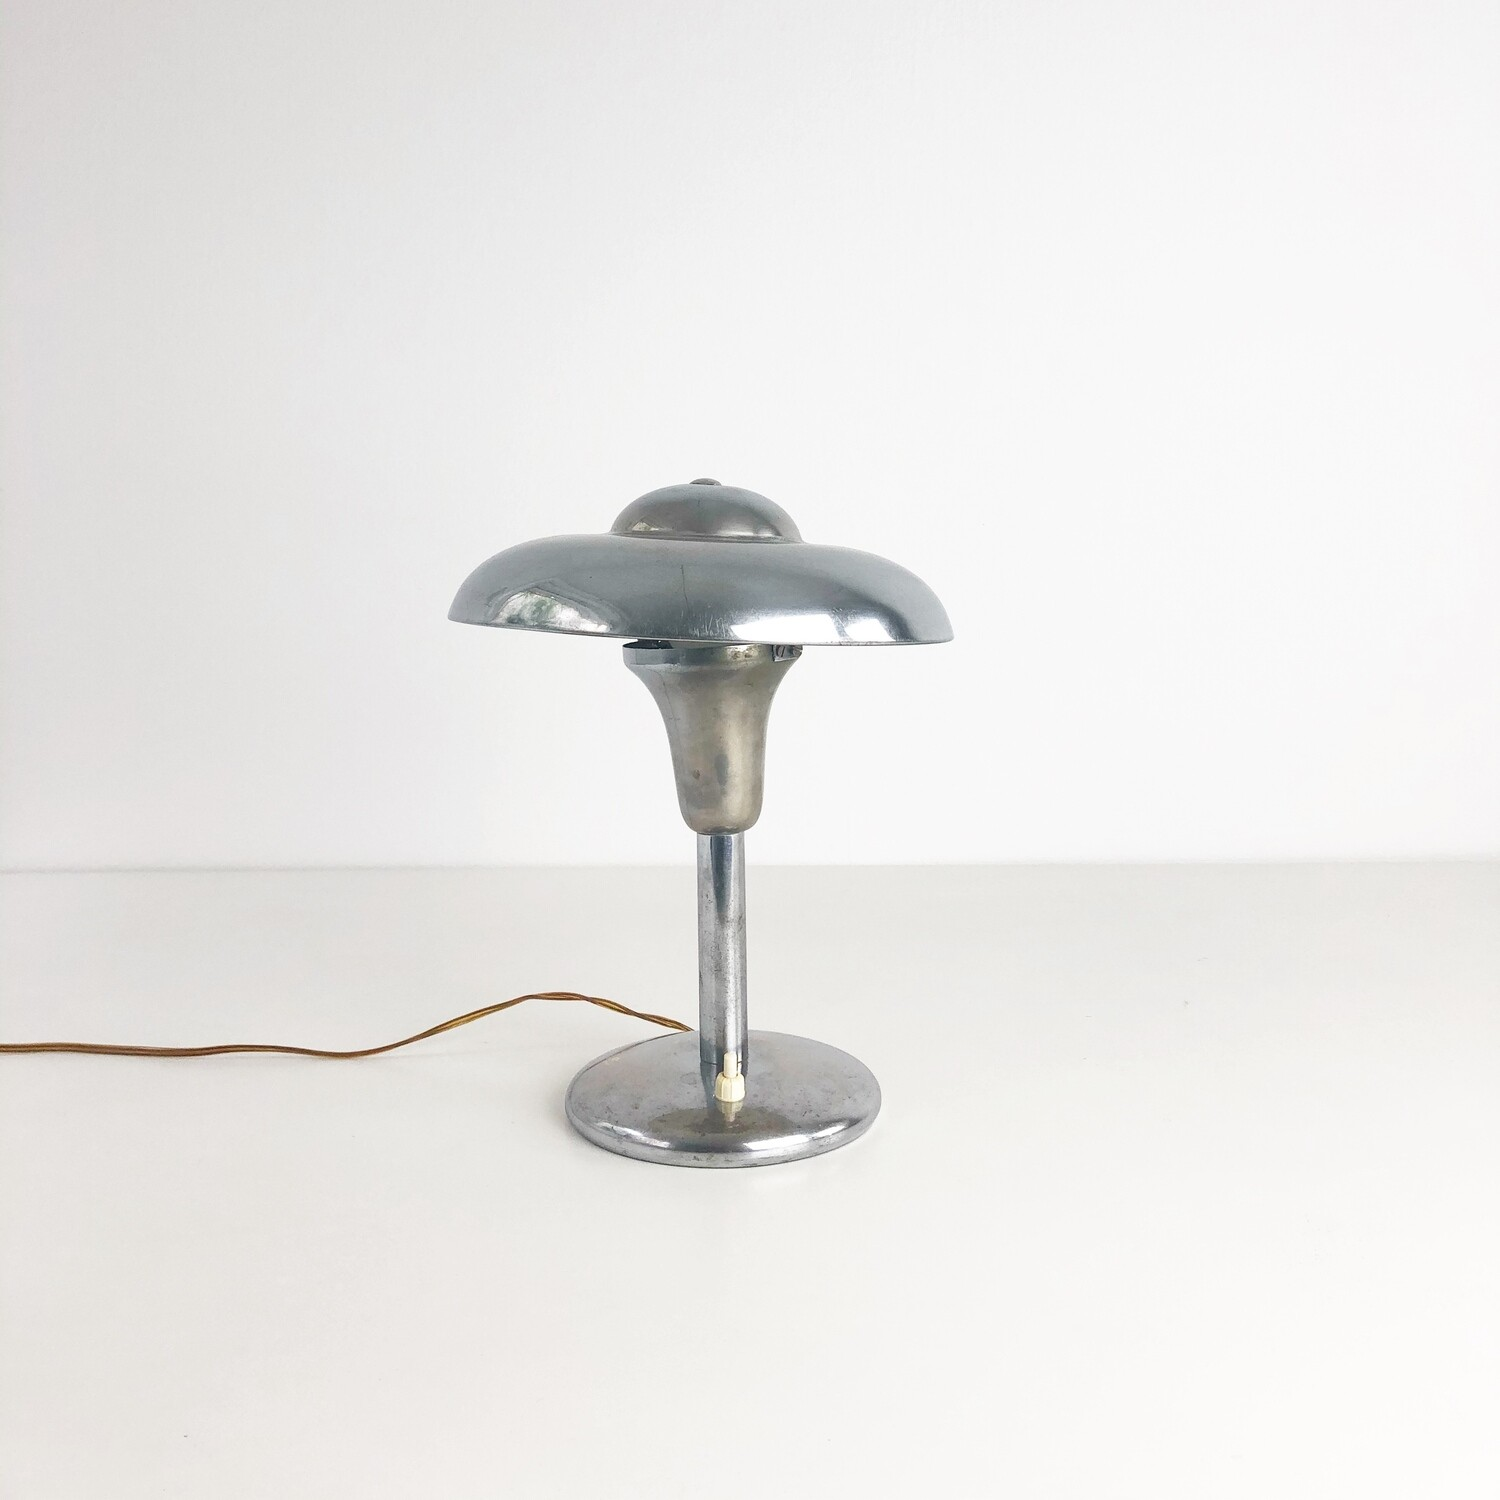 Bauhaus style table lamp in chromed metal from the 1930s